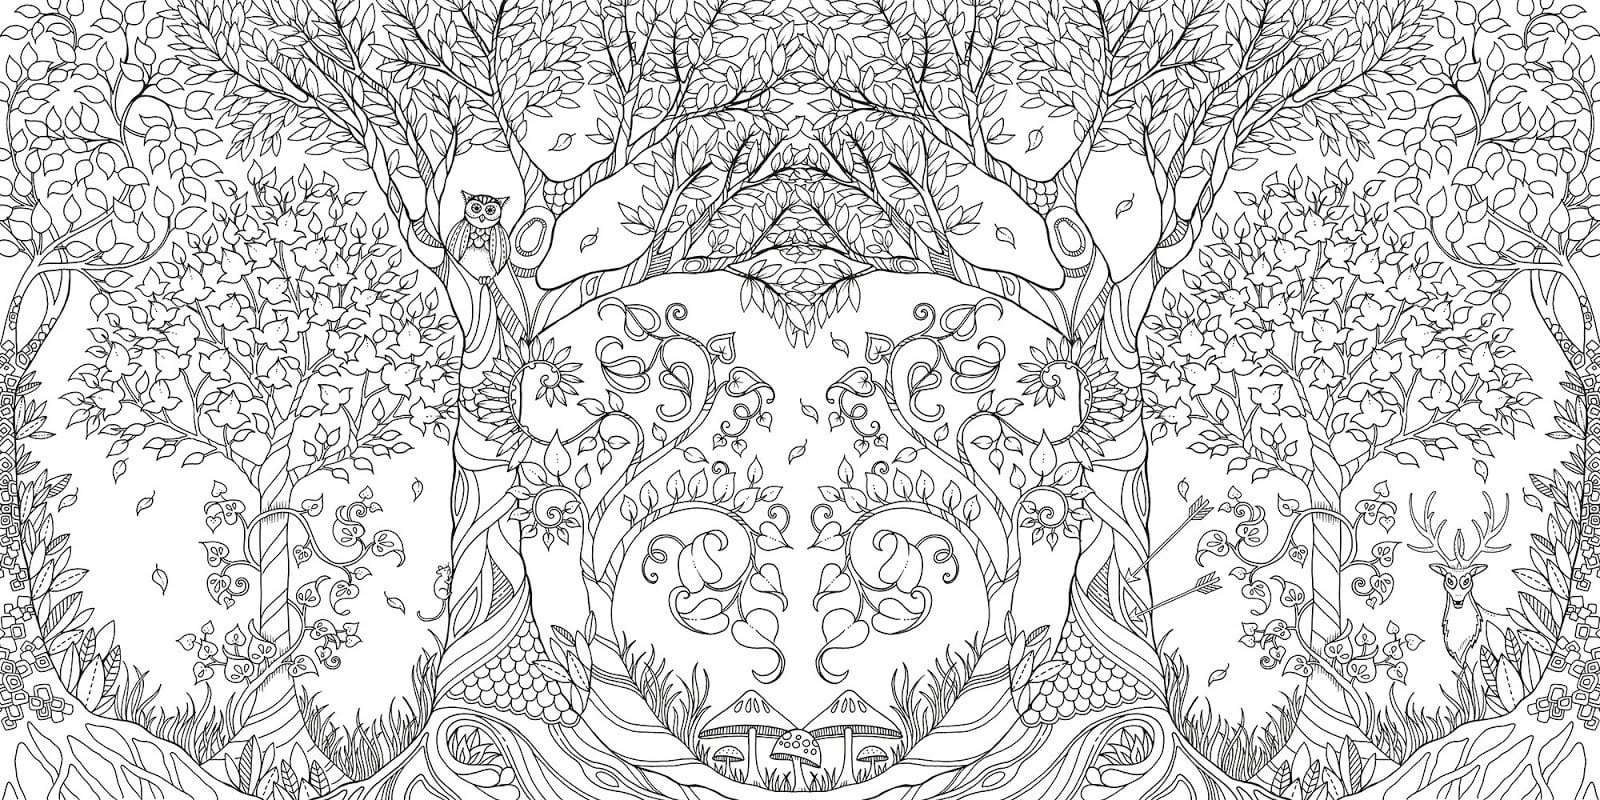 Grown Up Coloring Books Are Here!